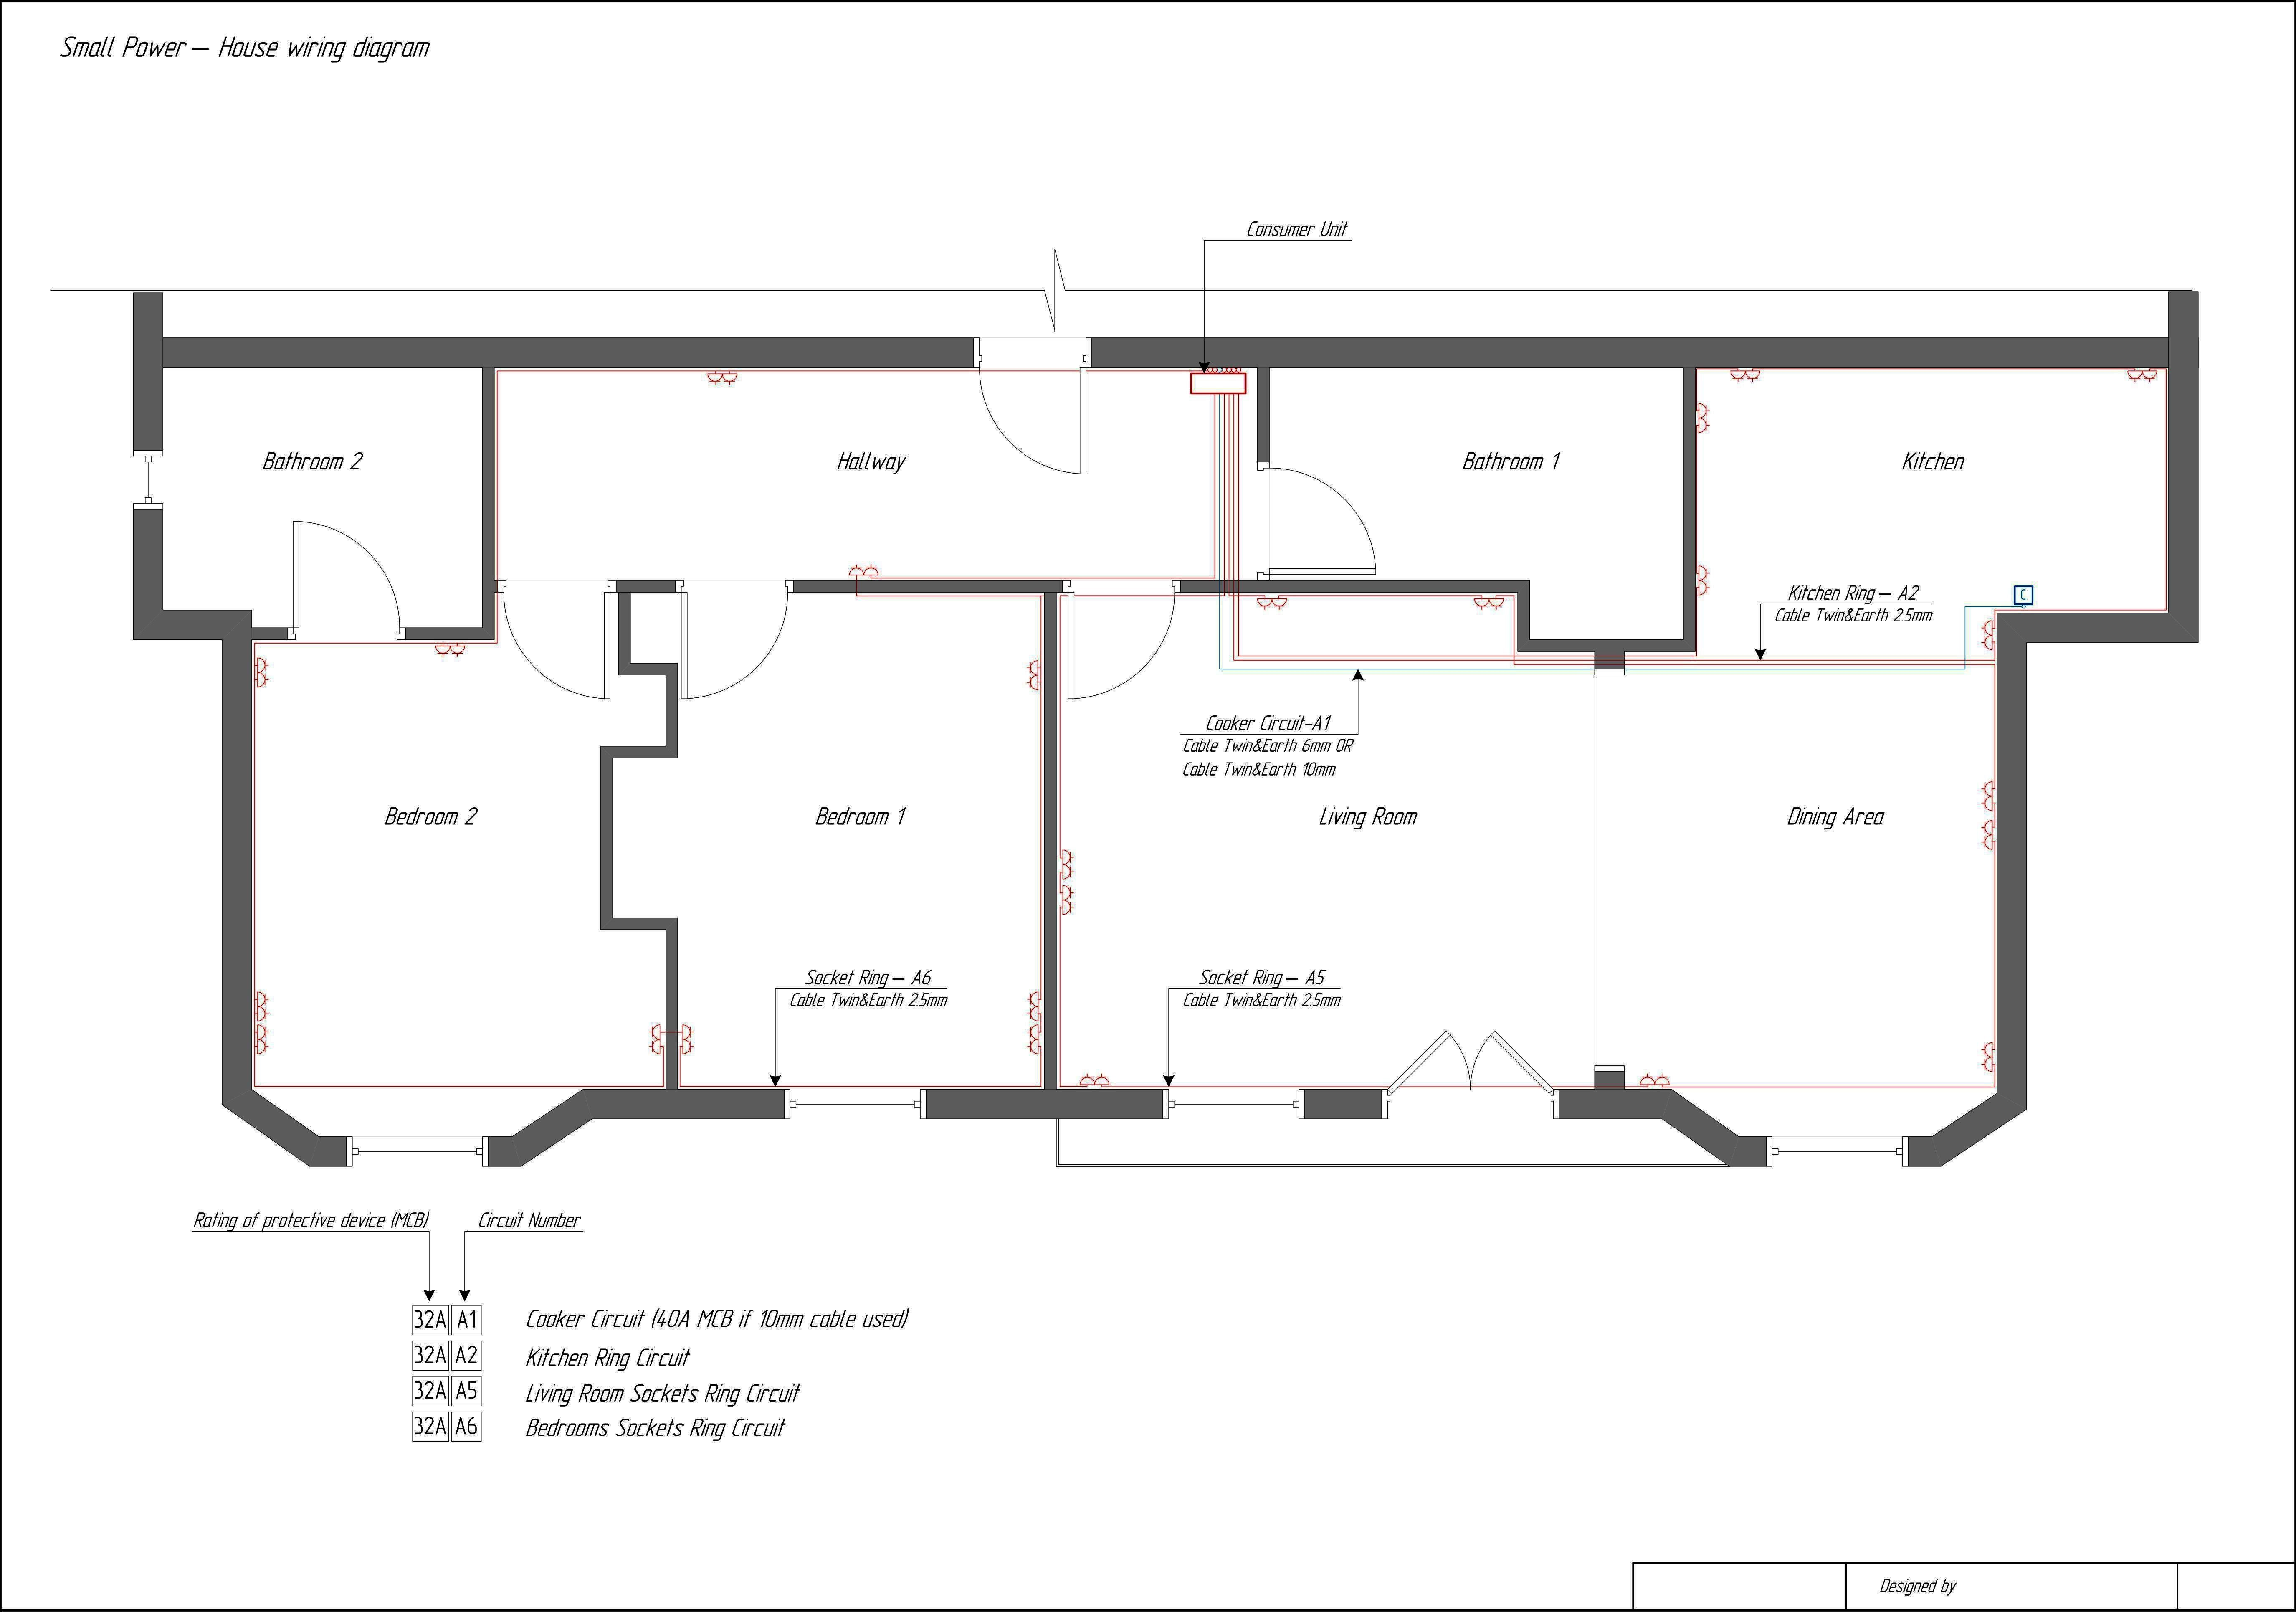 Unique Home theater Wiring Diagram Sample #diagram #wiringdiagram # diagramming #Diagramm #visual… | House wiring, Electrical circuit diagram,  Home electrical wiringPinterest